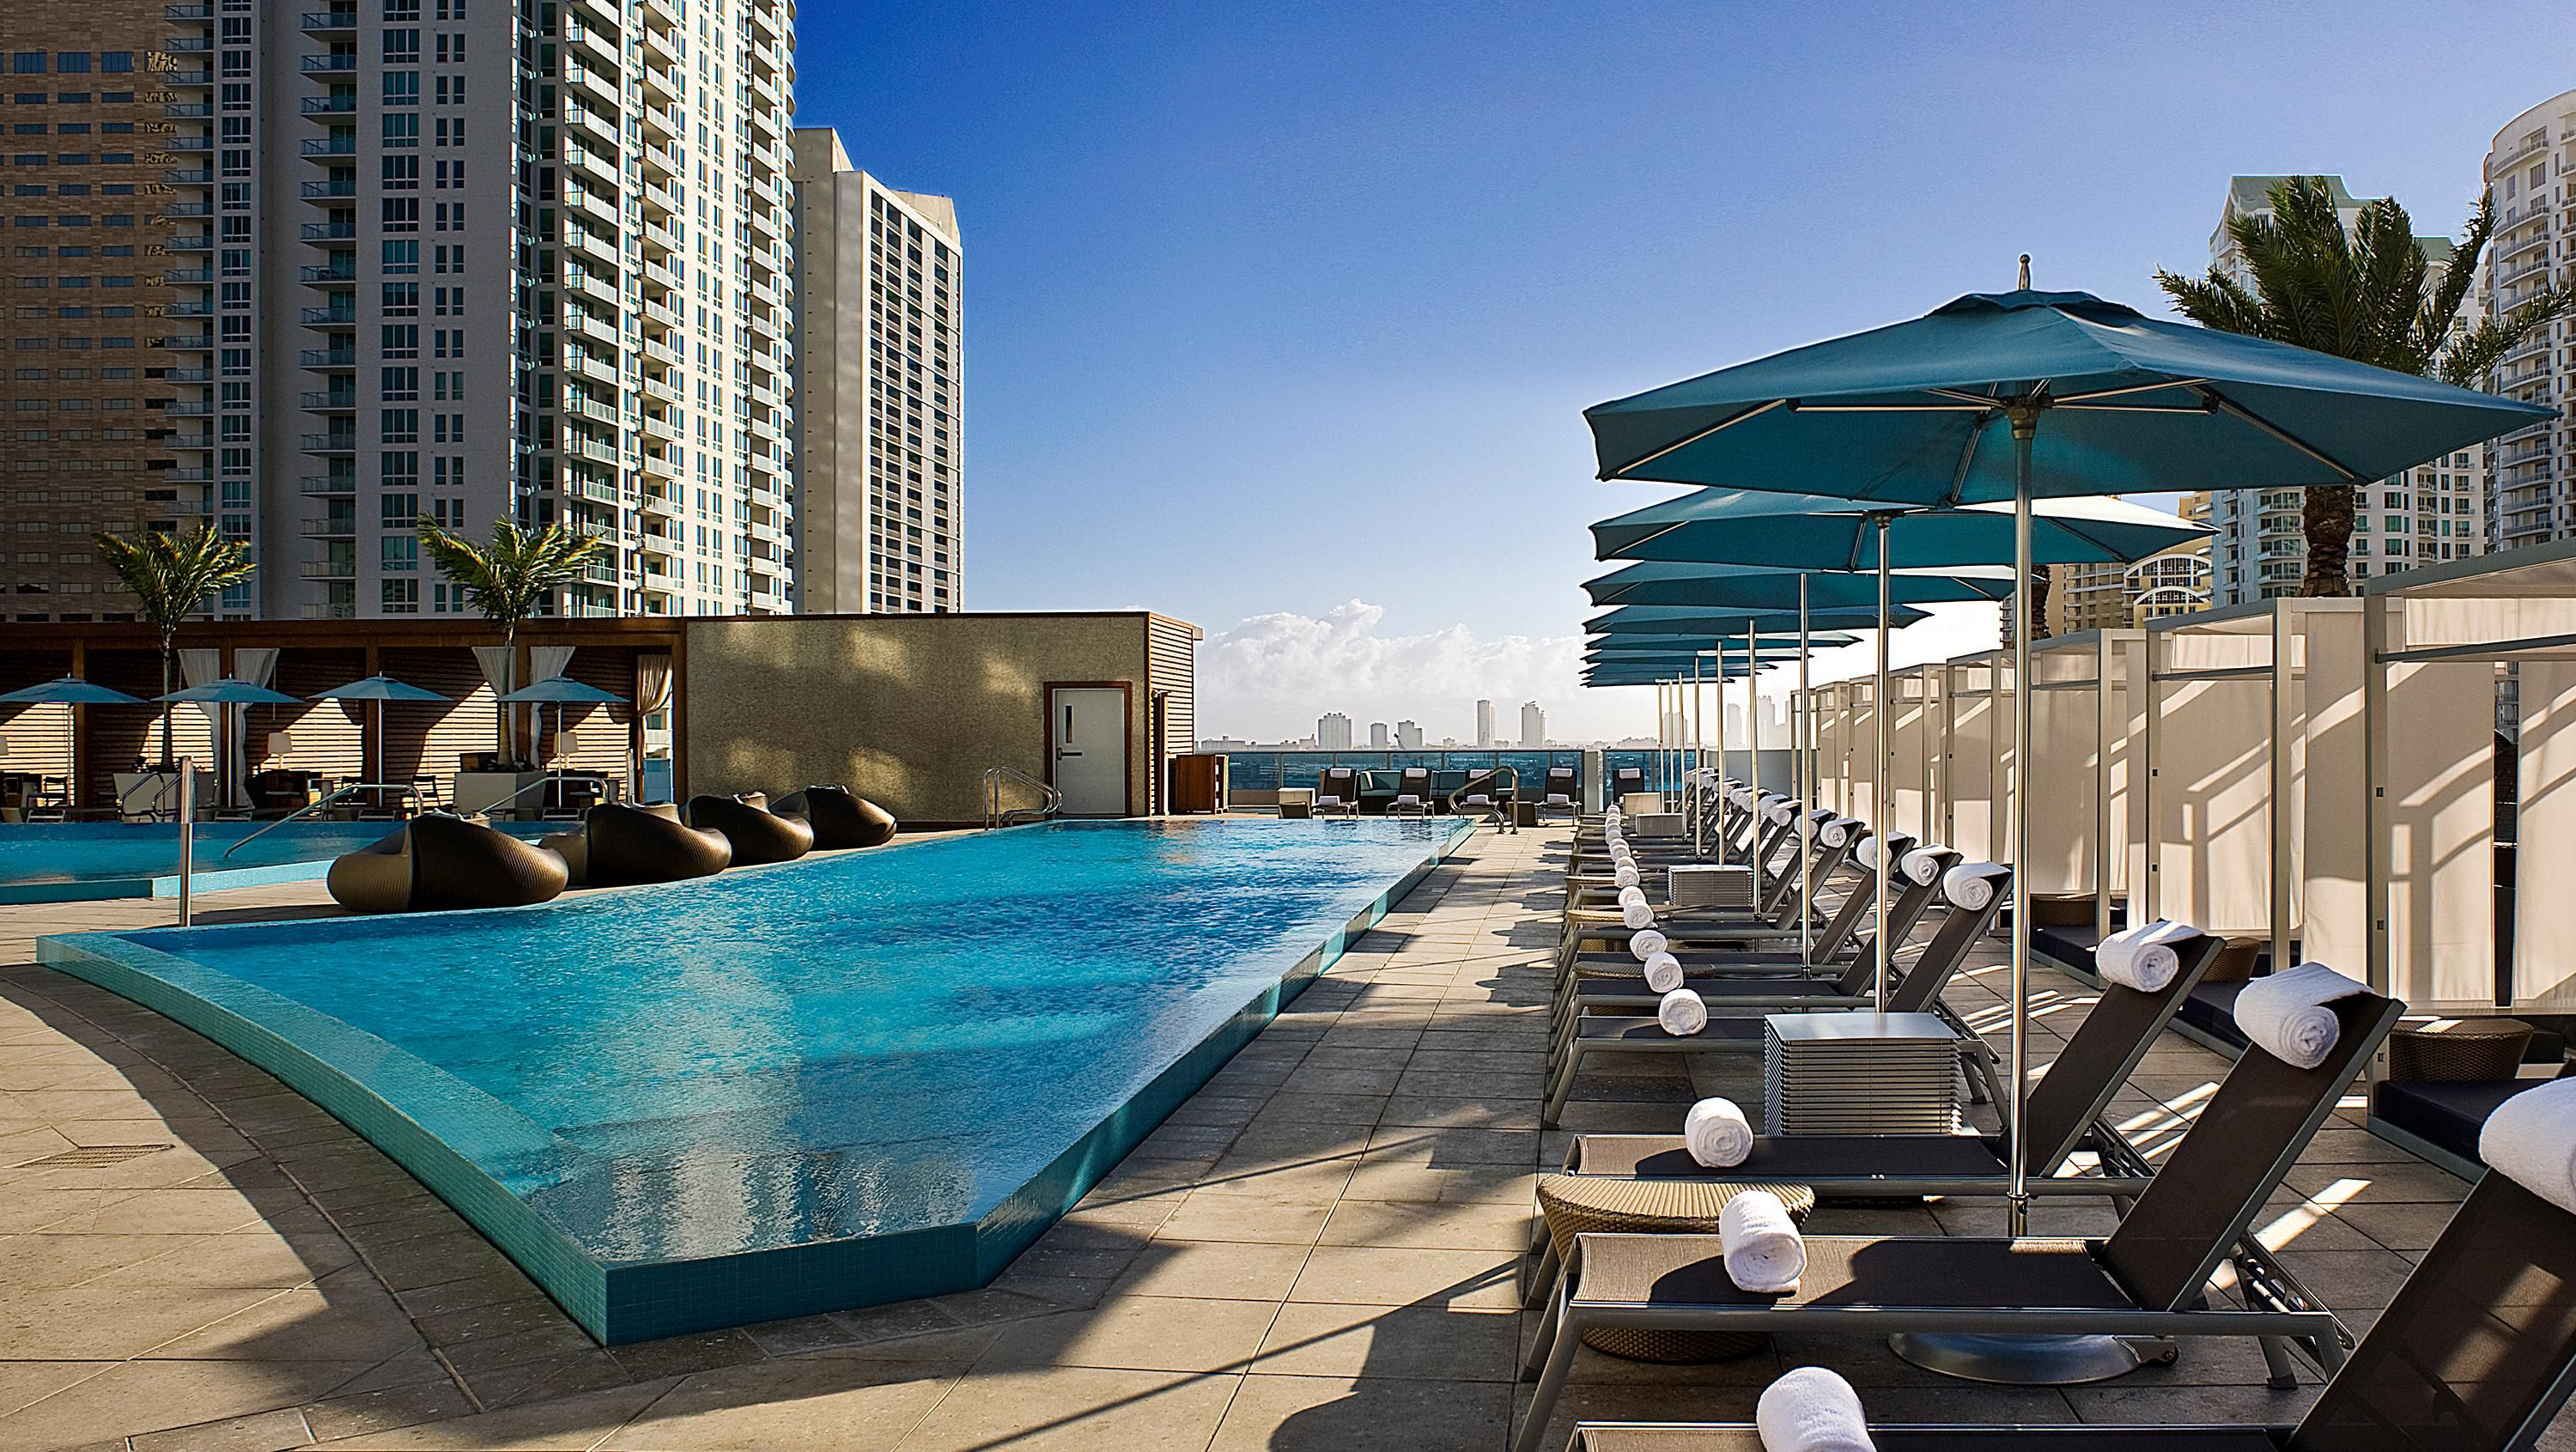 garden gardens hotels curio of announces triptych design hotel worldwide in hilton miami a district by signing collection news cheap